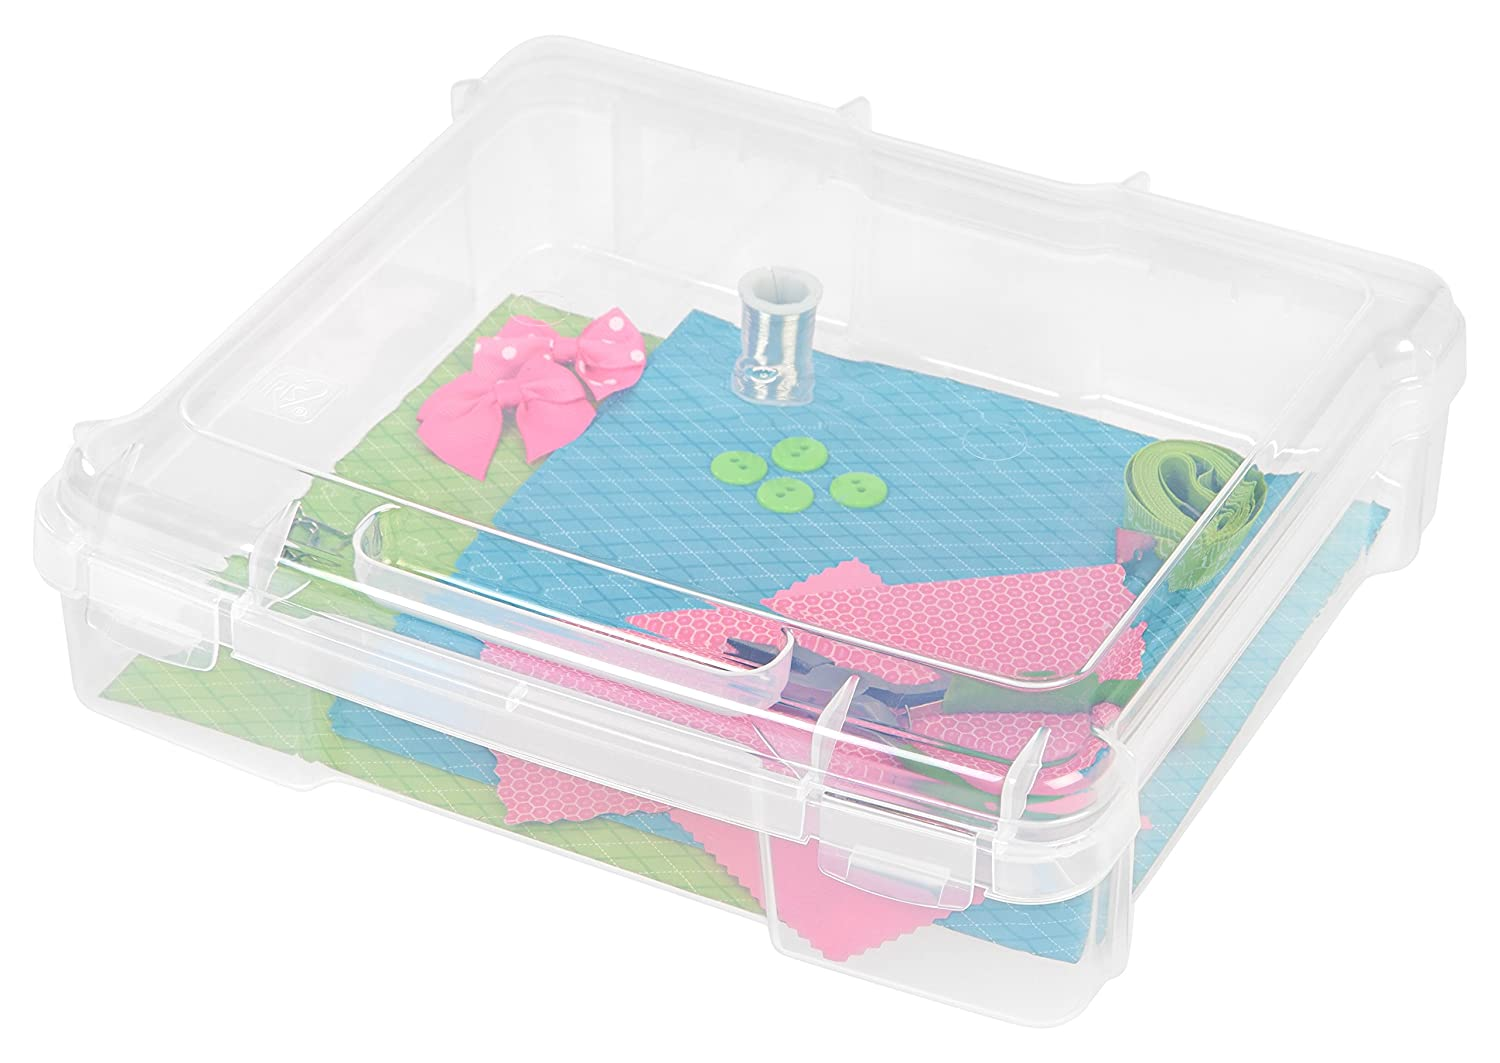 8 Pack IRIS Portable Project Case for 6 x 6 Paper